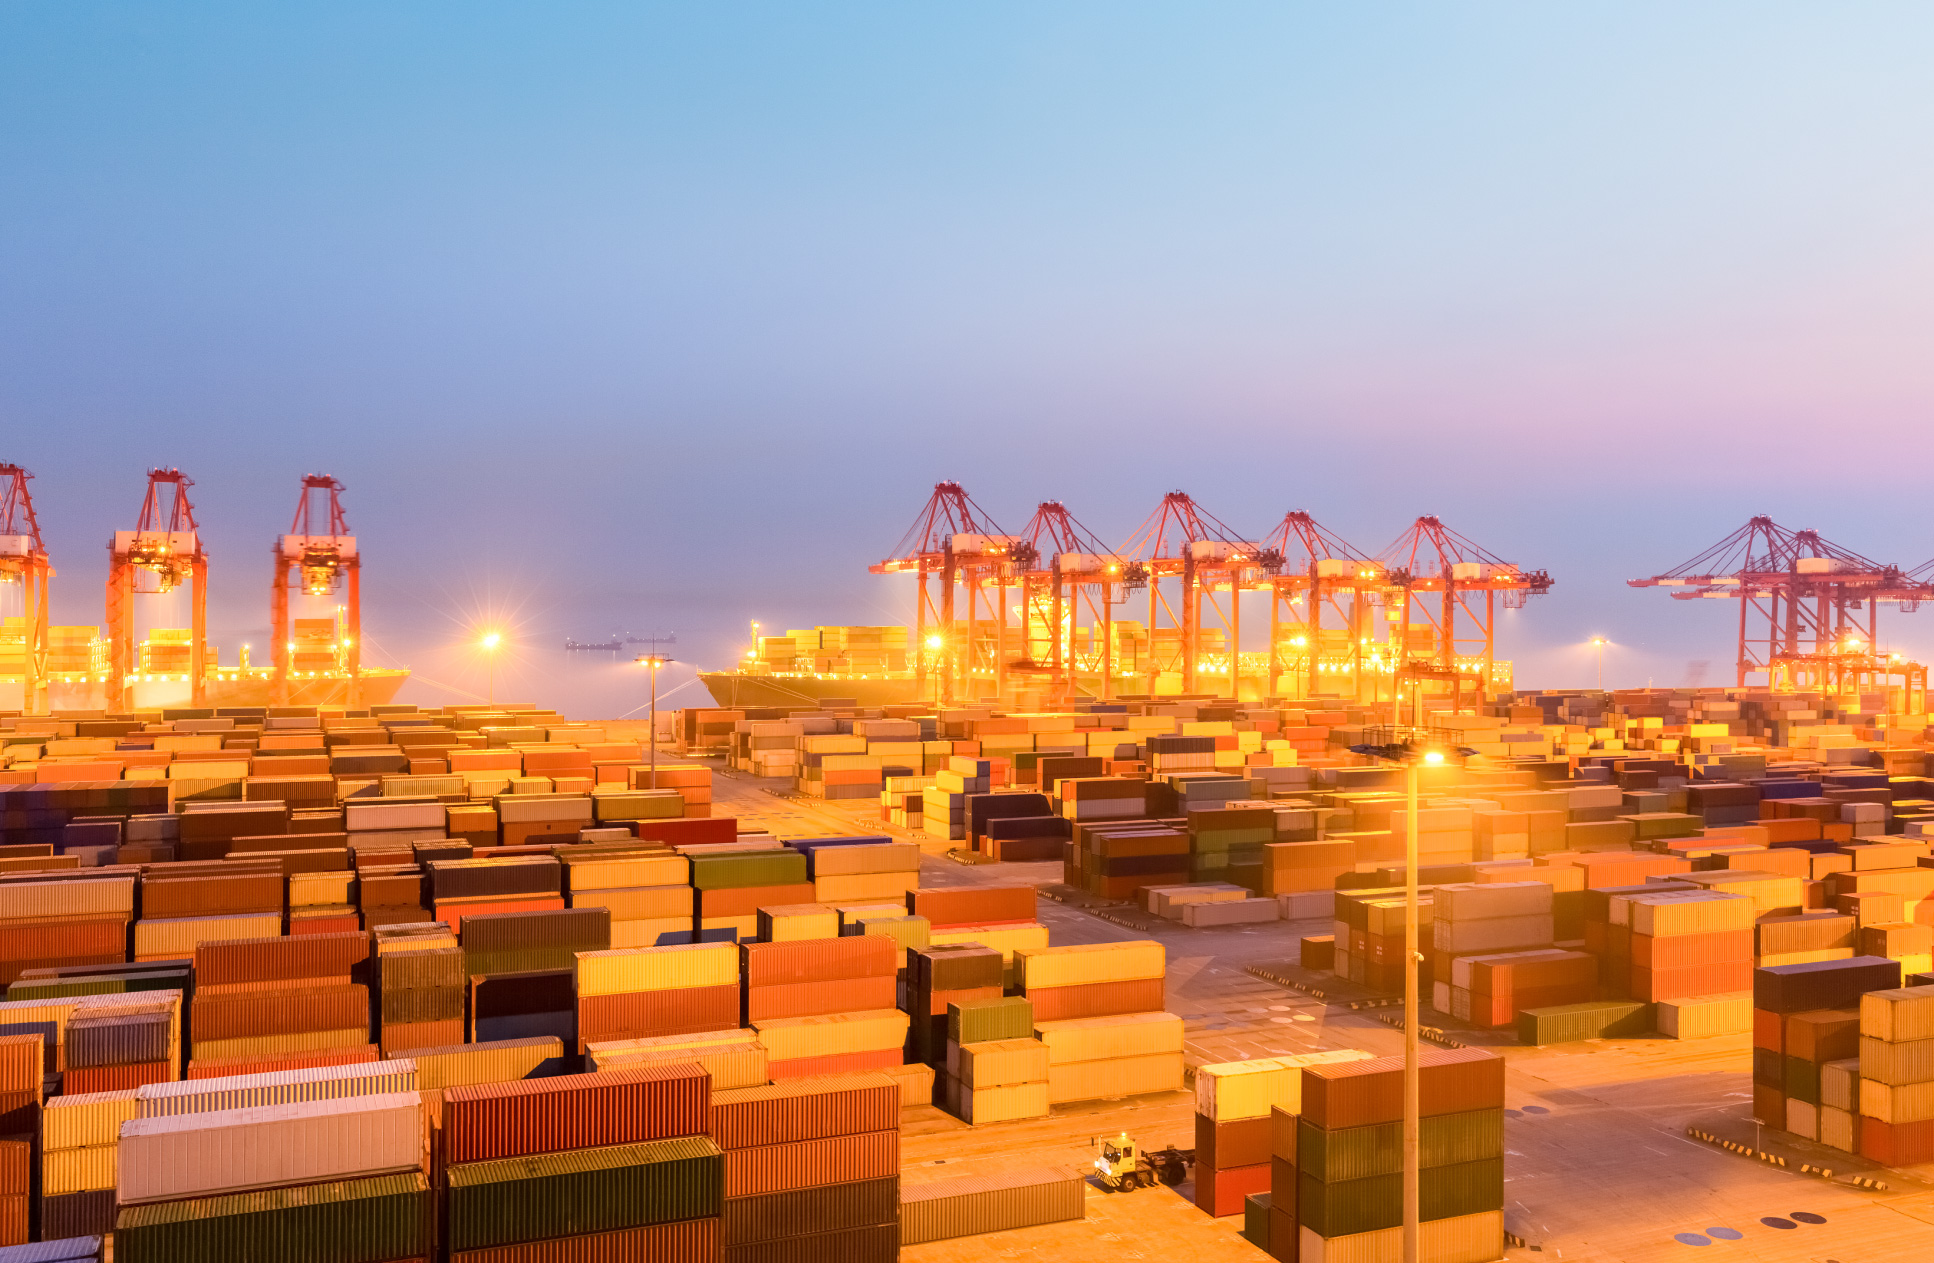 Advance Rulings Programme to facilitate international trade in Oman